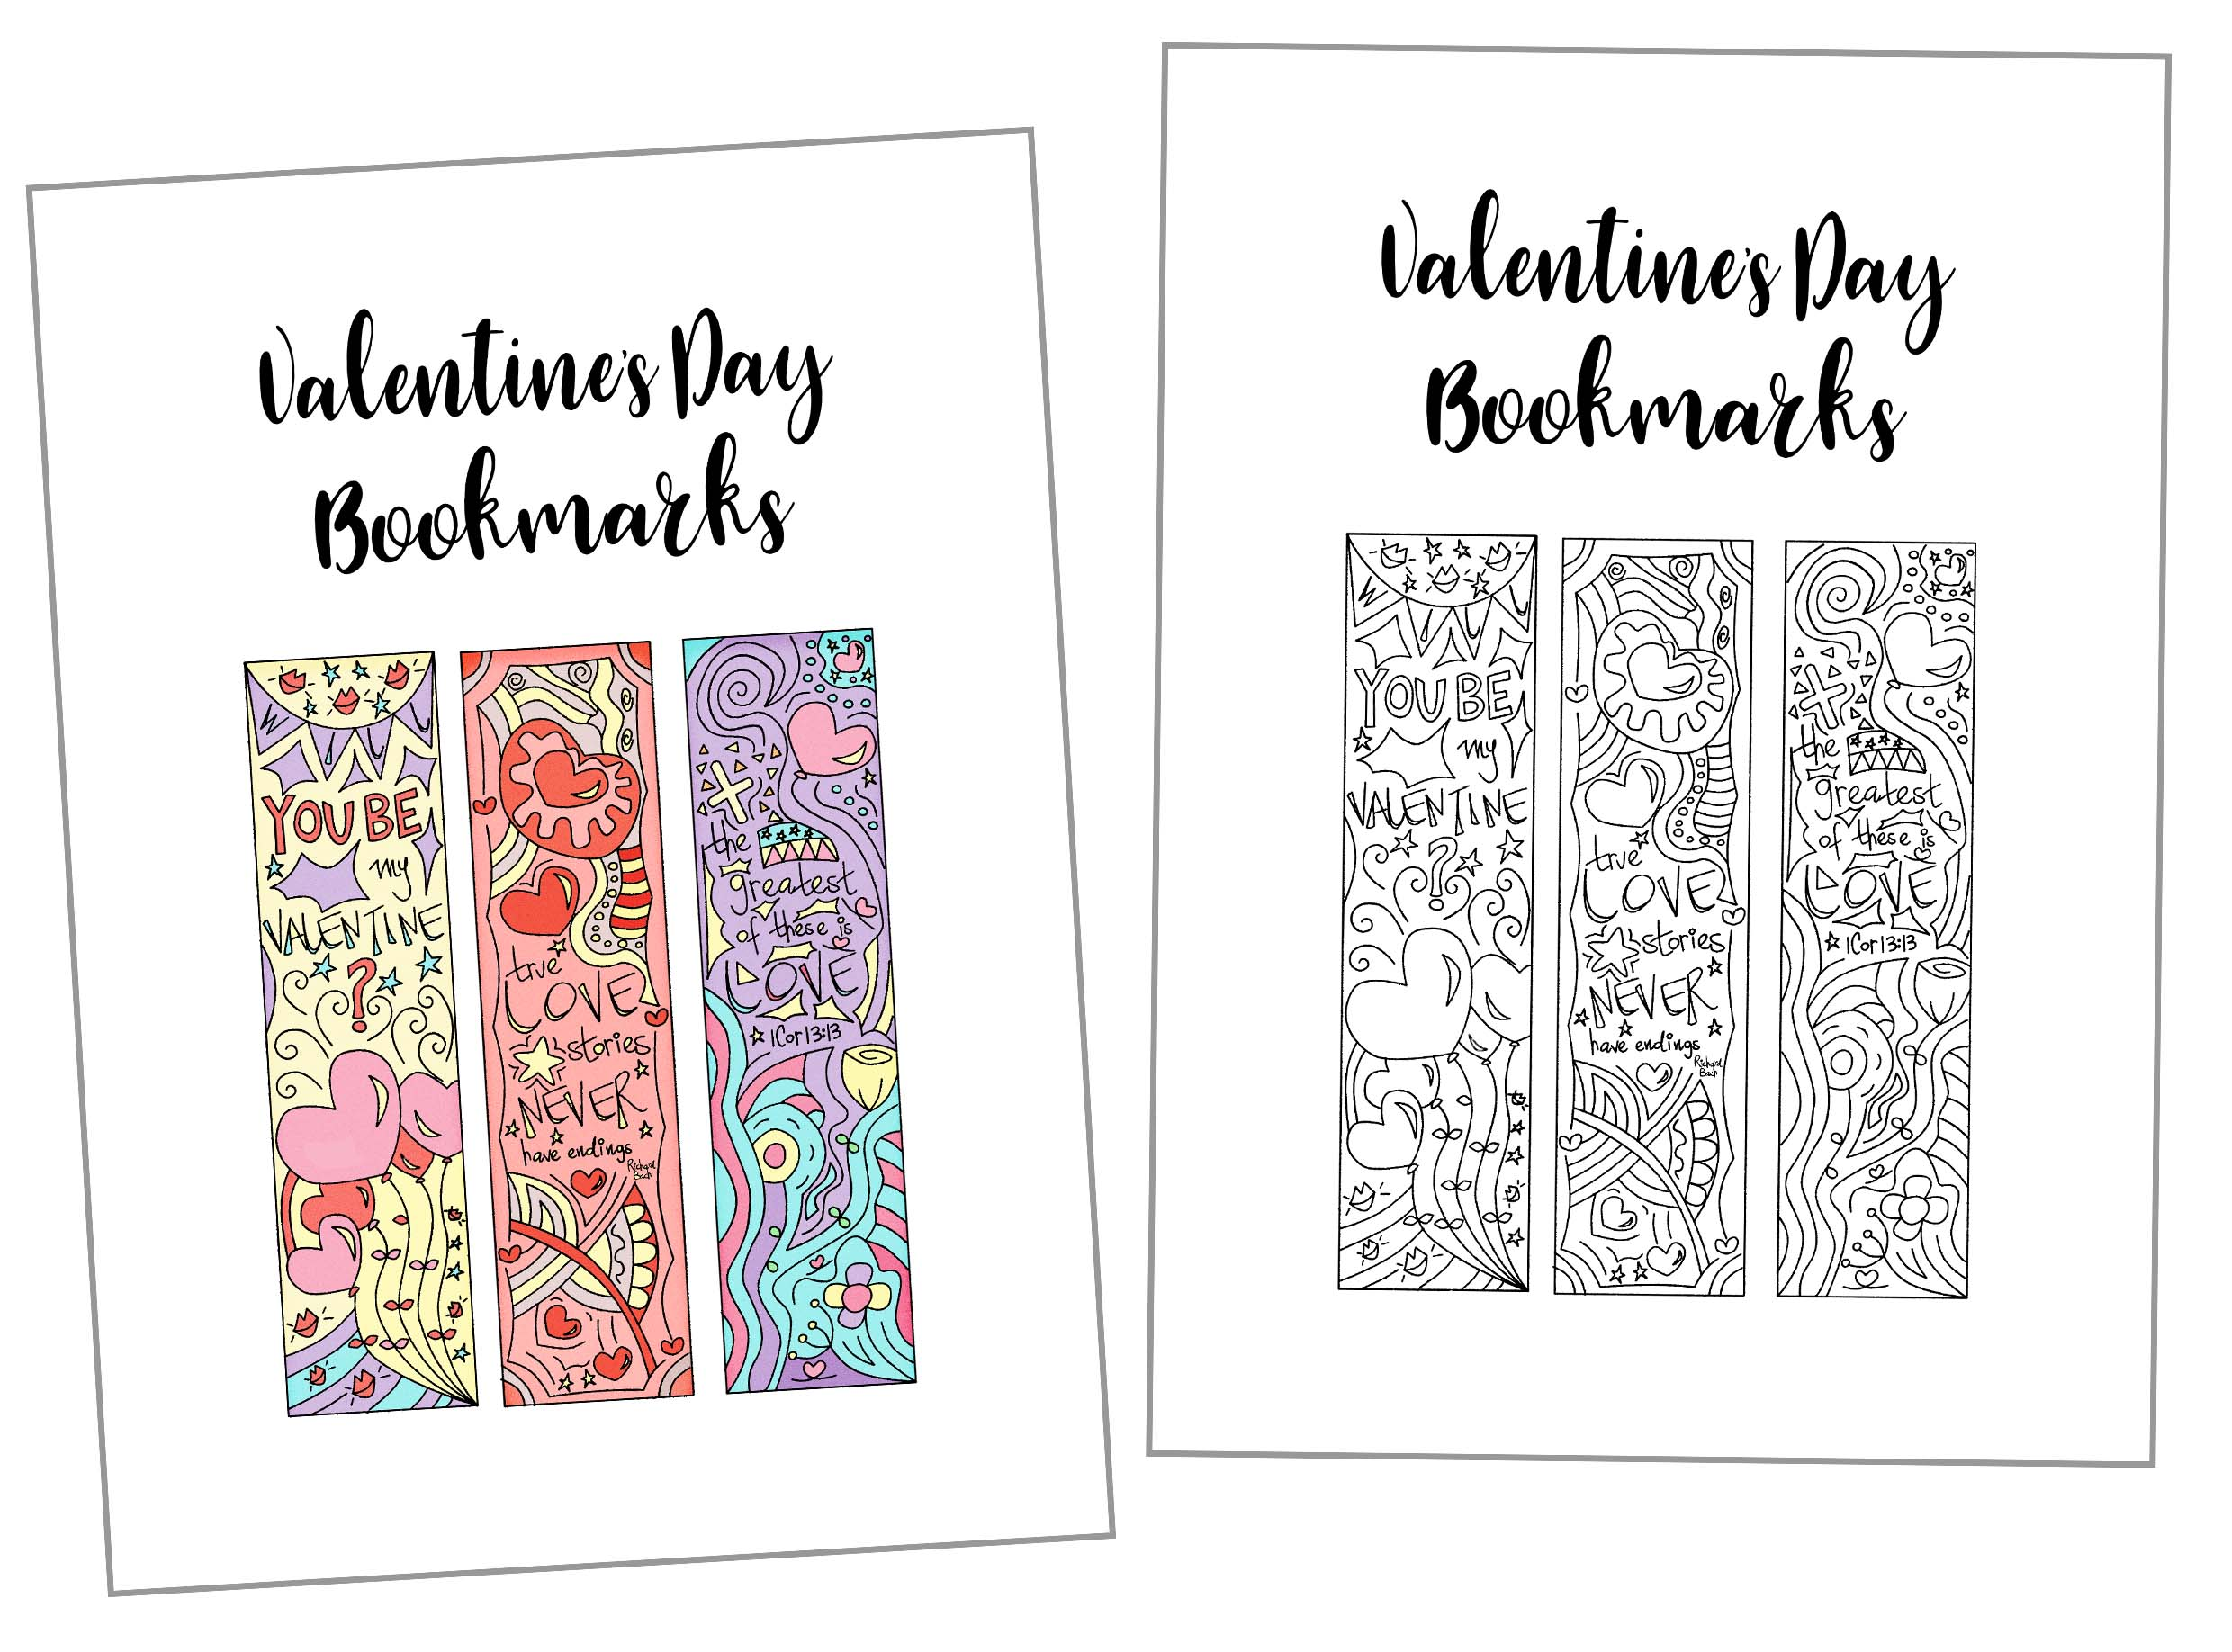 photograph relating to Bookmarks Printable referred to as Coloring Valentines Working day Bookmarks Absolutely free Printable